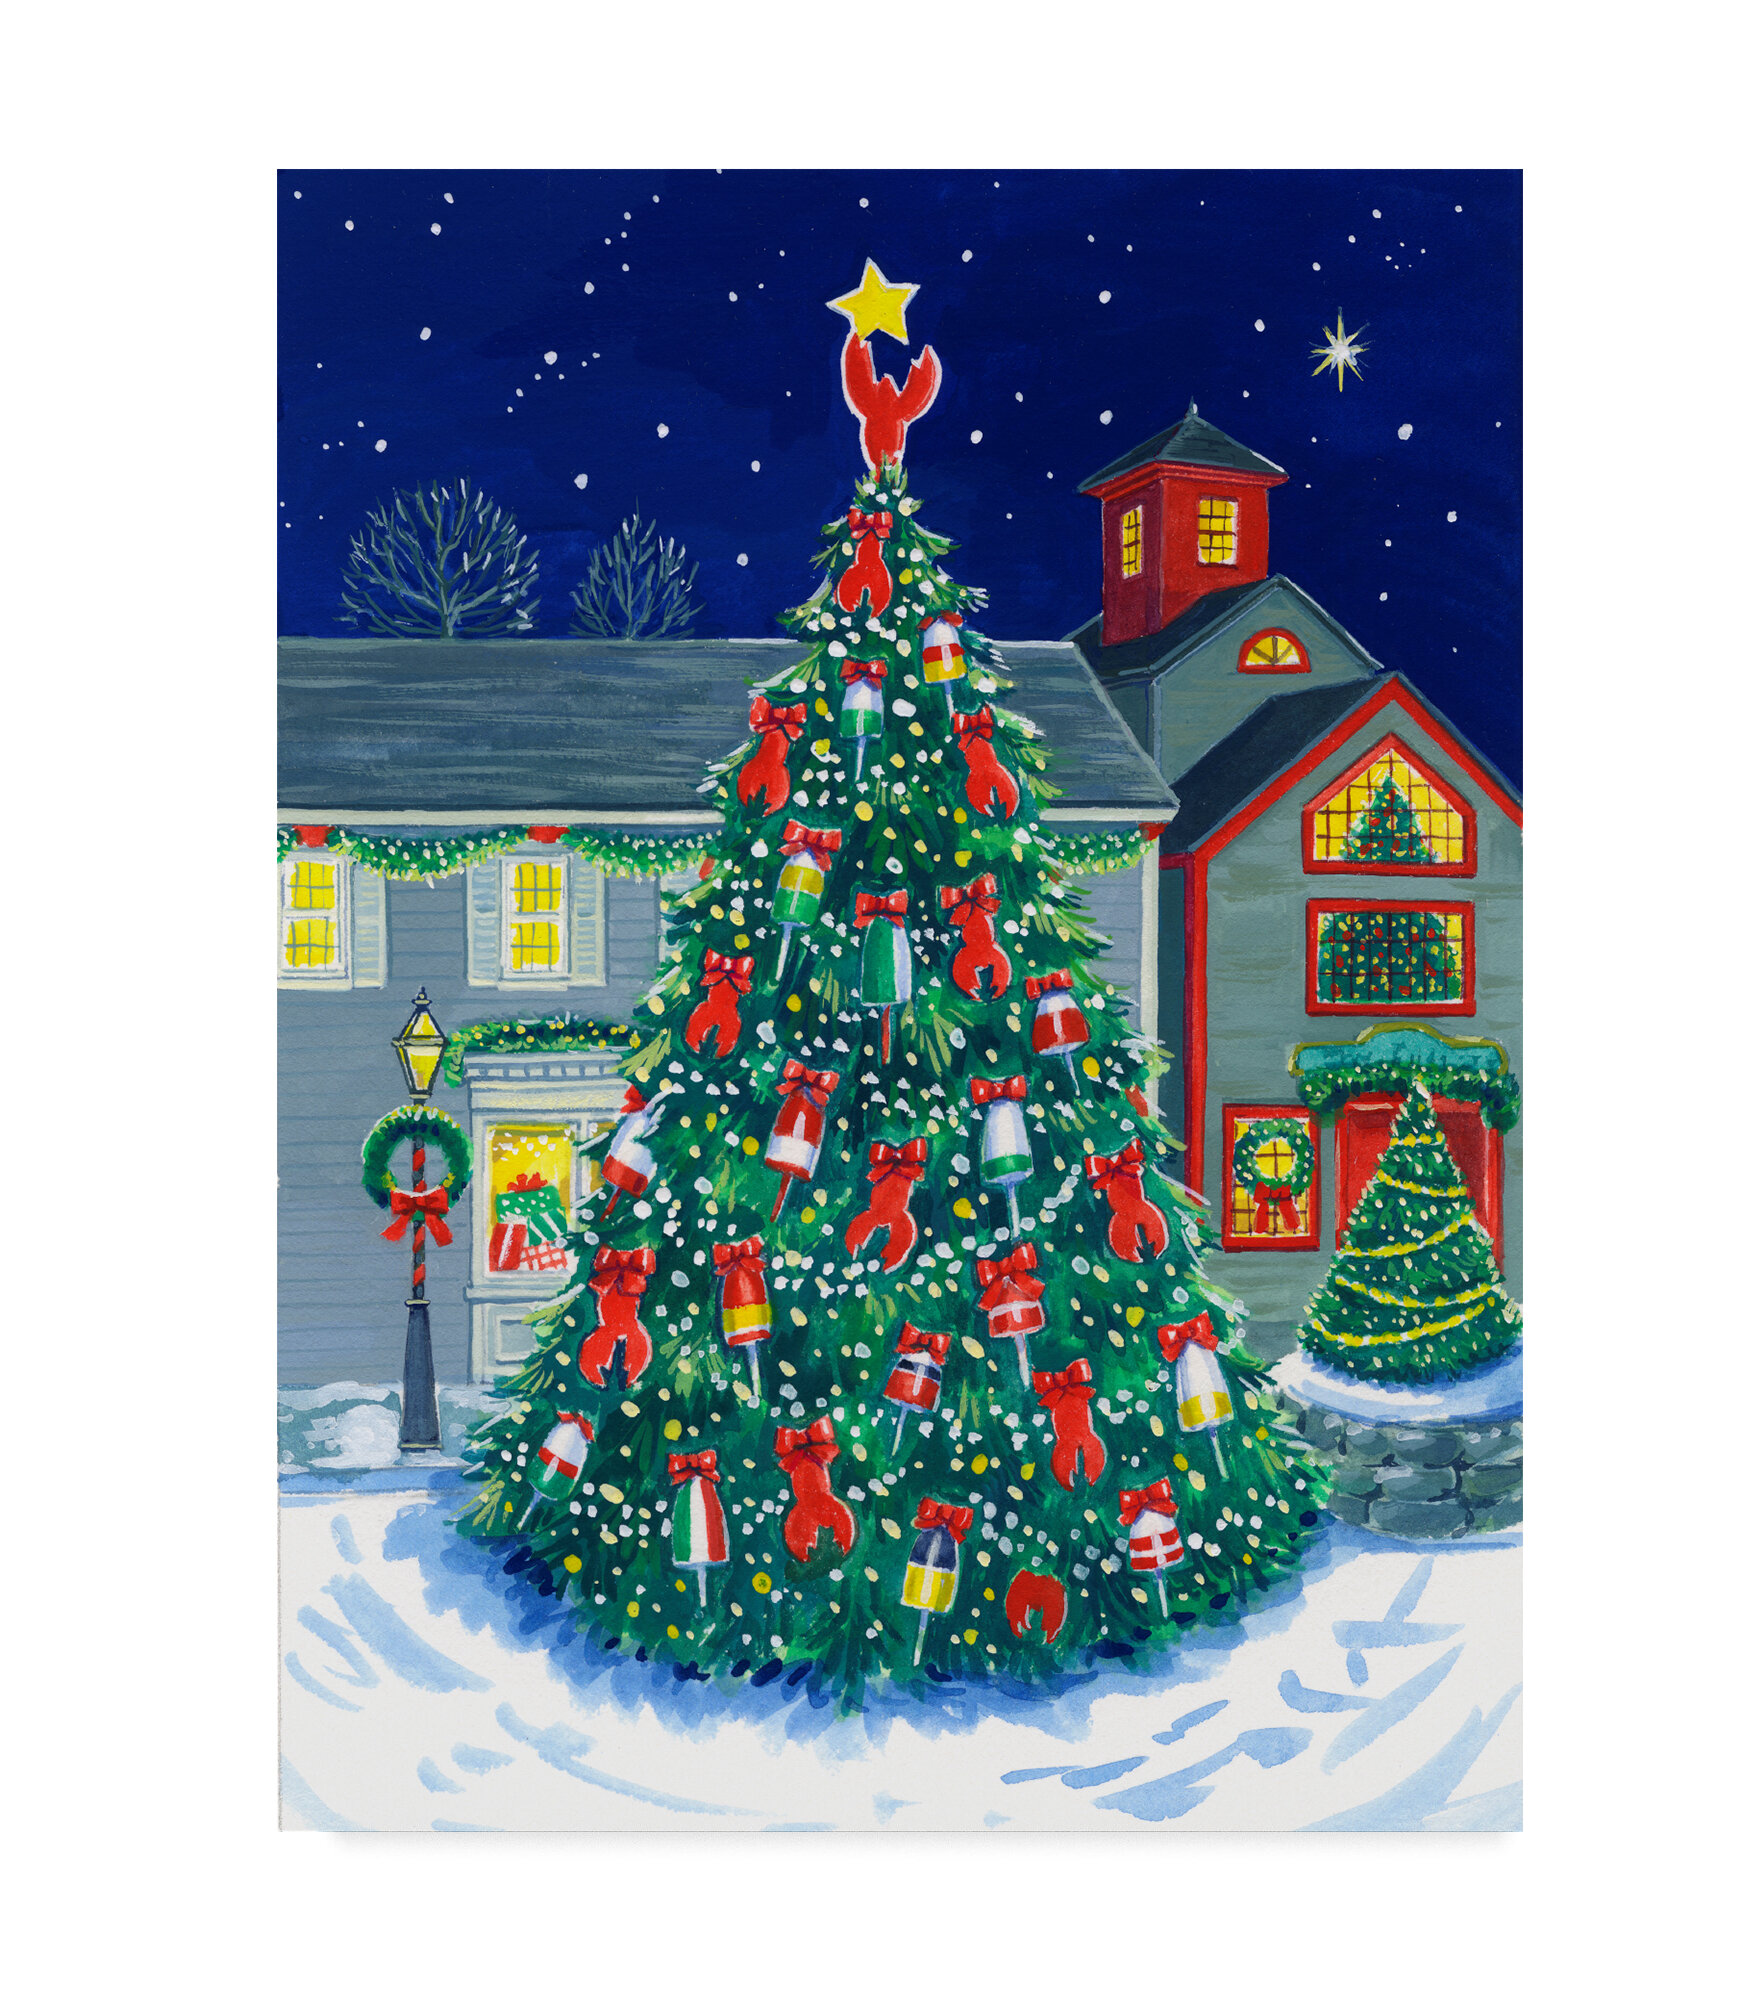 Acrylic Christmas Tree Painting.Kennebunkport Tree Acrylic Painting Print On Wrapped Canvas